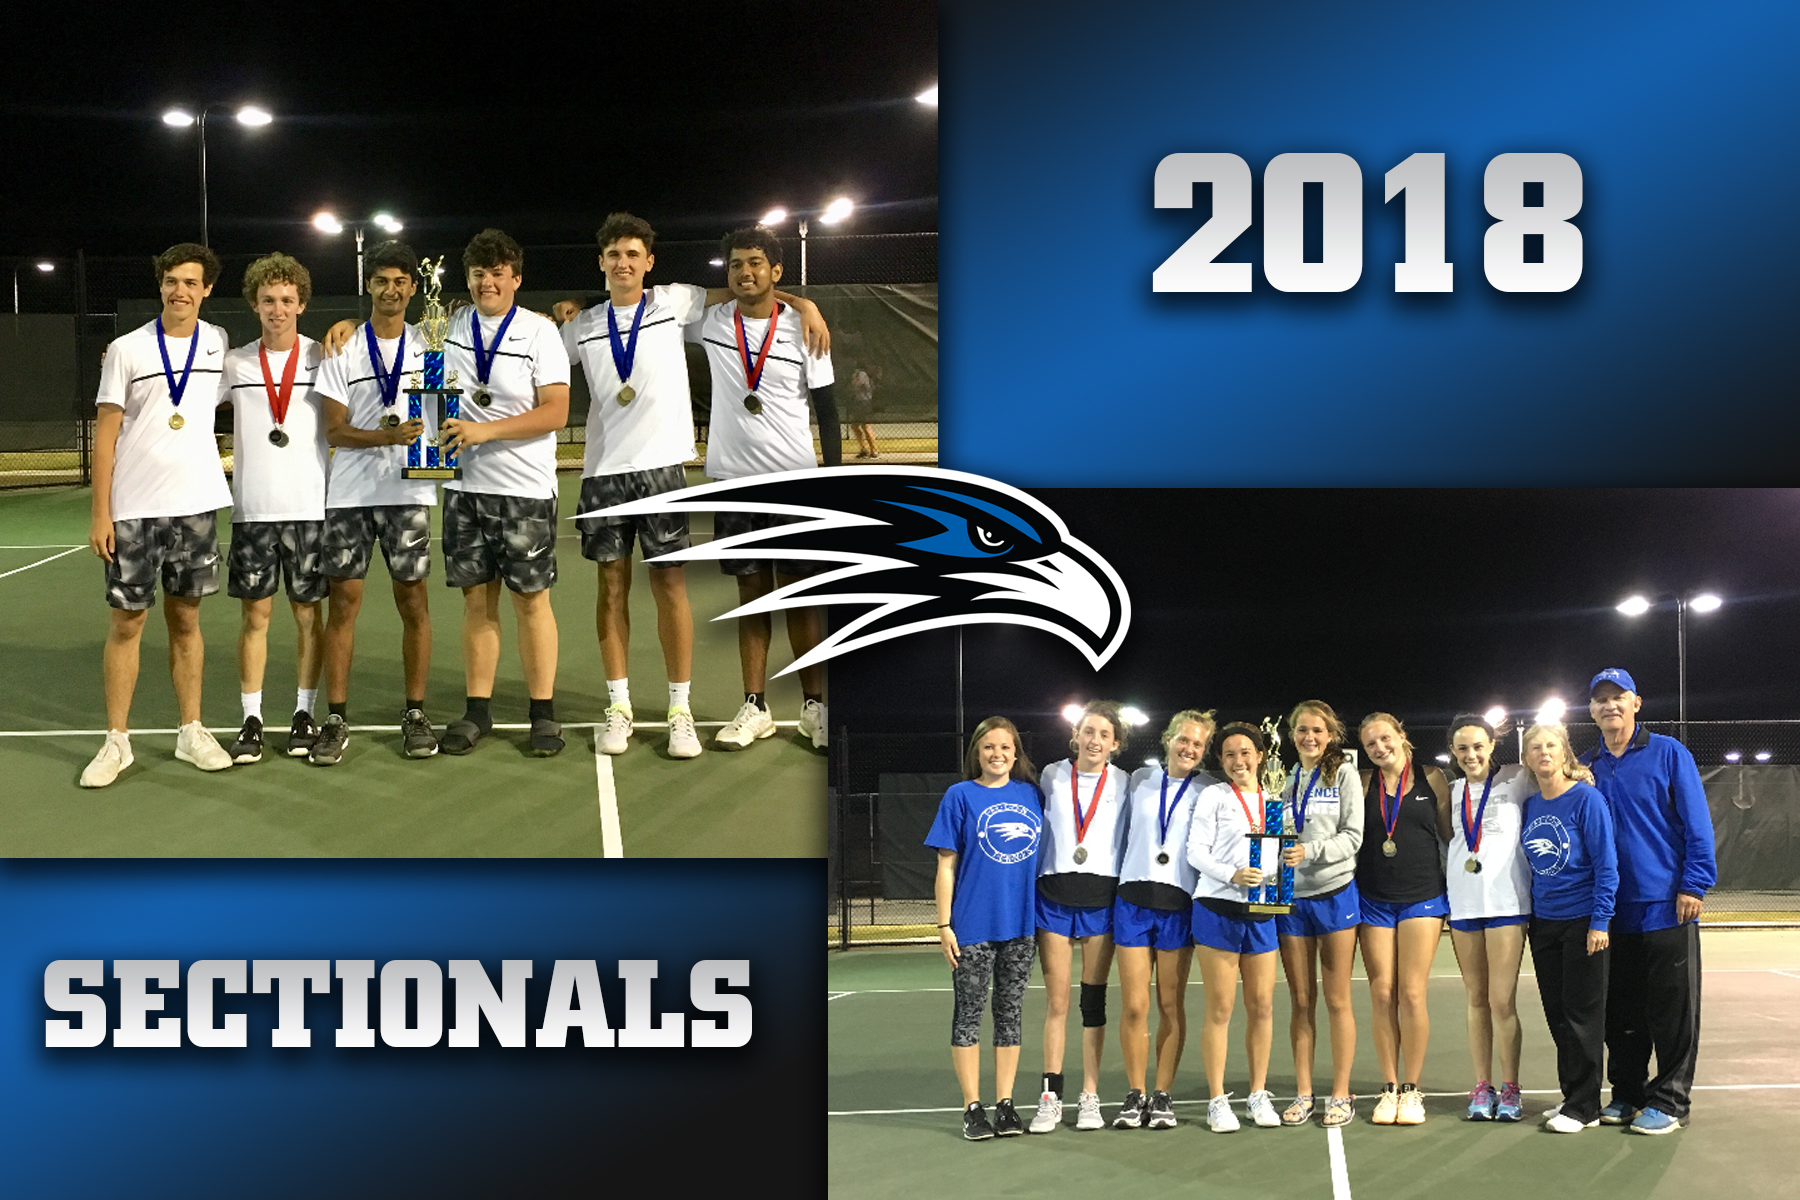 Florence Falcon boys and girls tennis teams win sectionals